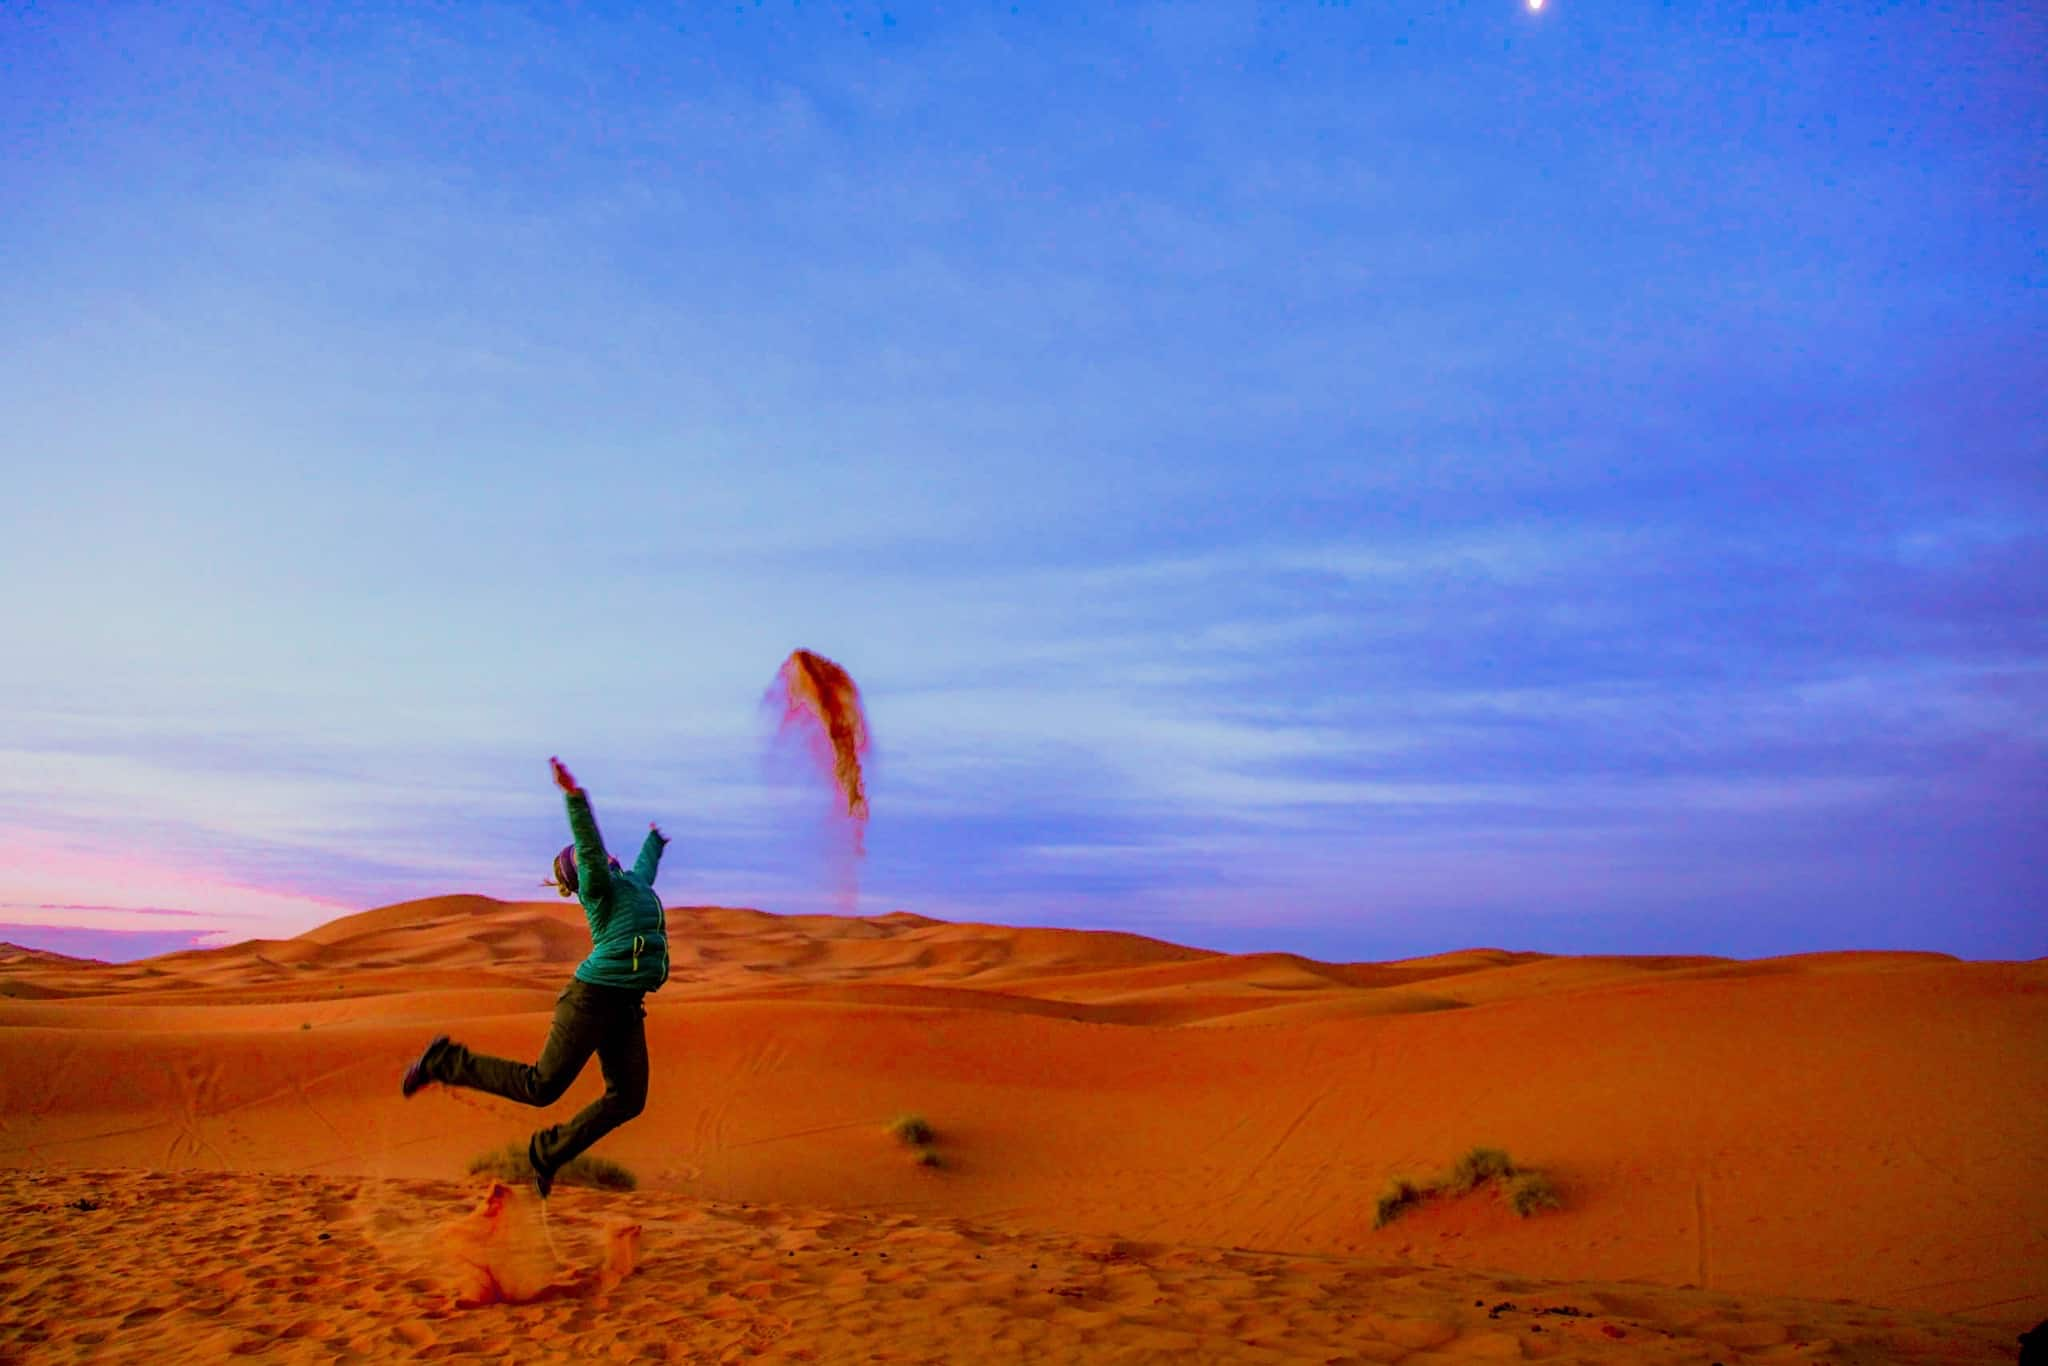 Going to Morocco? Check out the Sahara